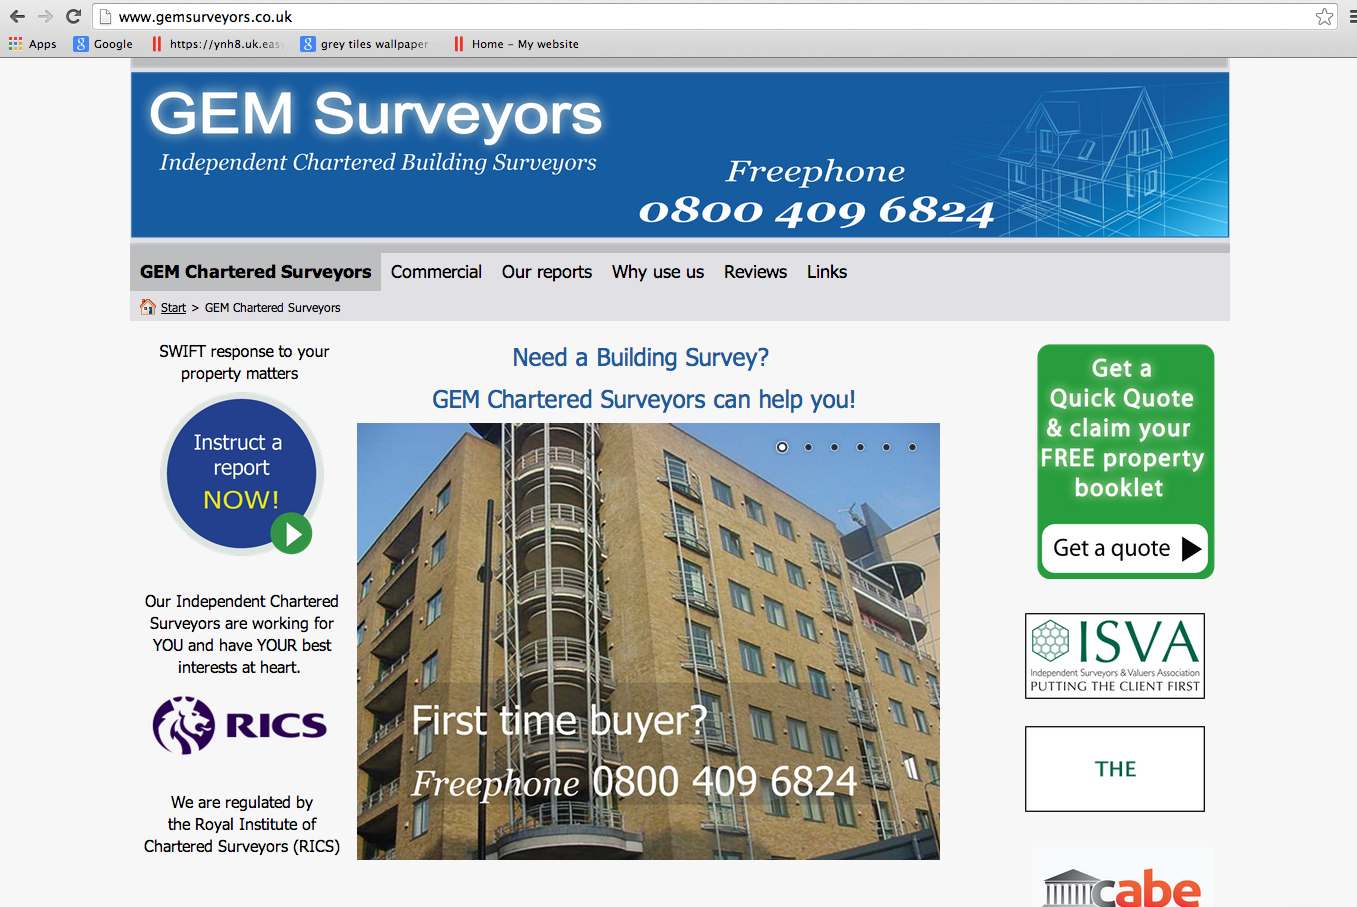 Website Brief - Gem Surveyors